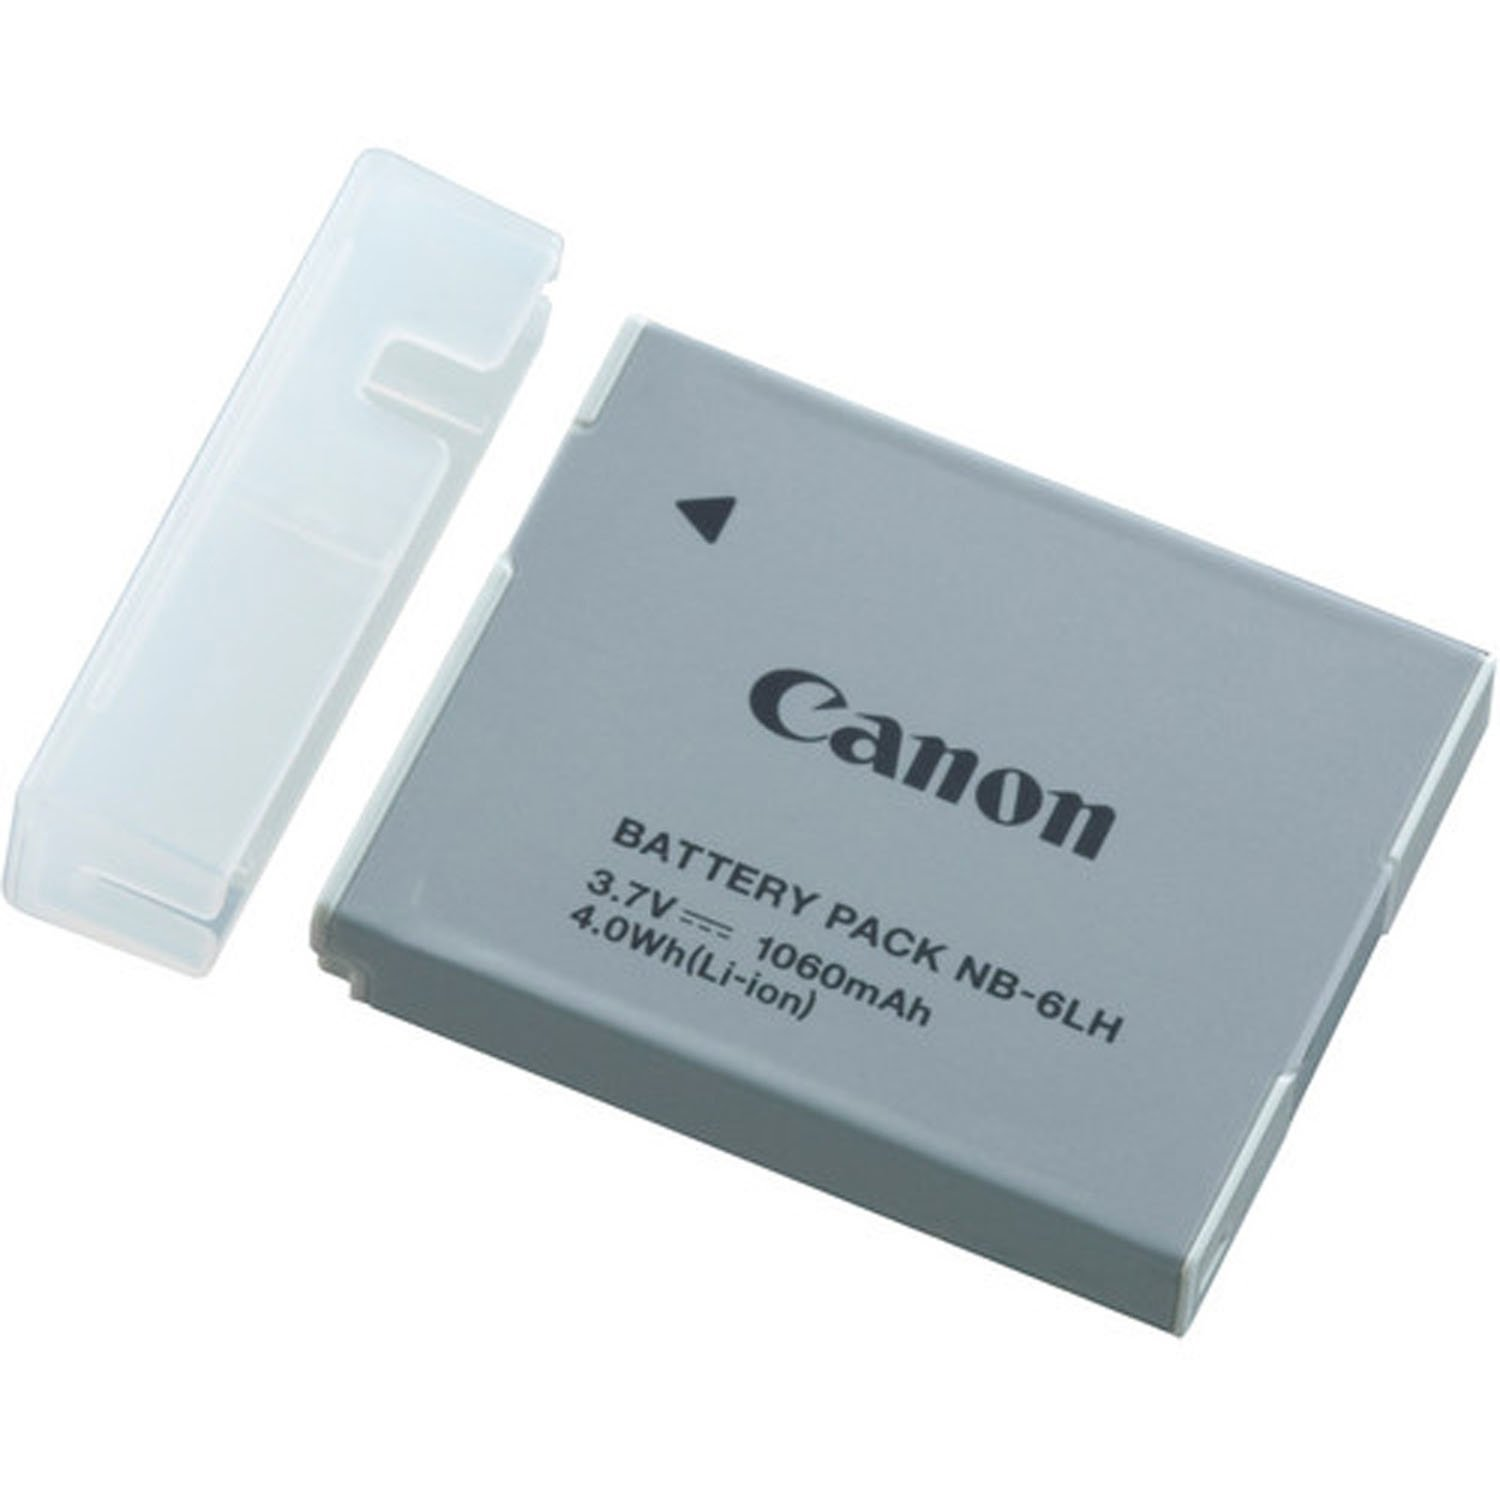 Canon 3.7v Lithium-Ion Battery Pack